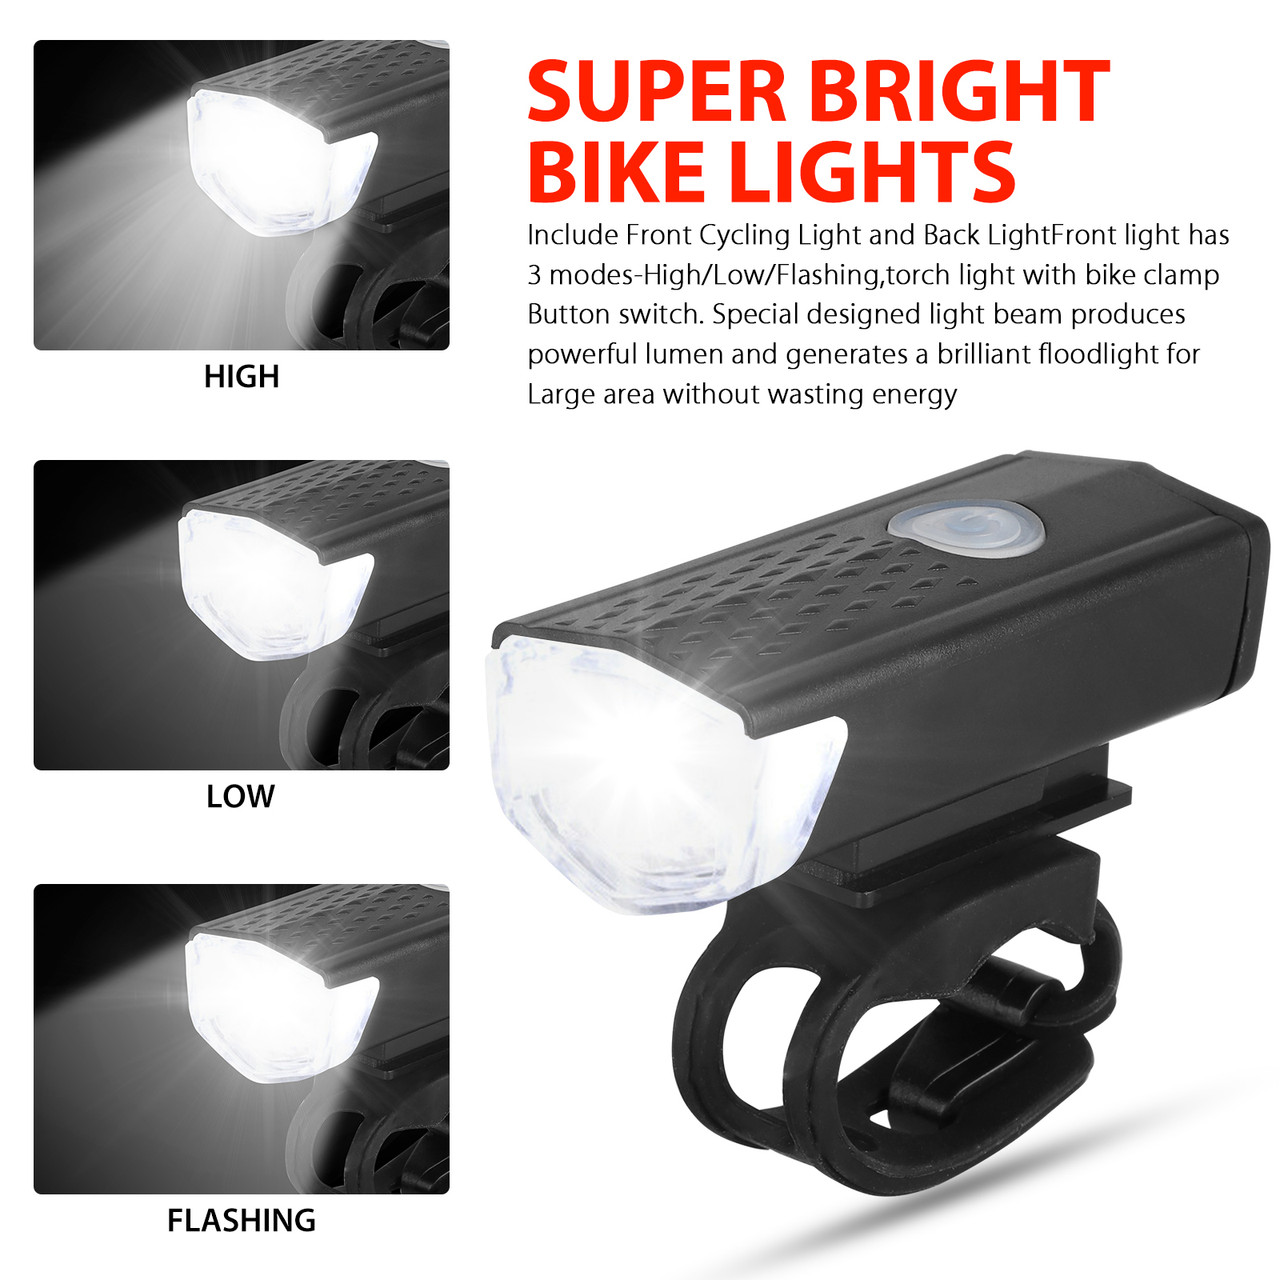 LED USB Rechargeable Cycling Light Bicycle Bike Front Rear Lamp Set With 3 Modes